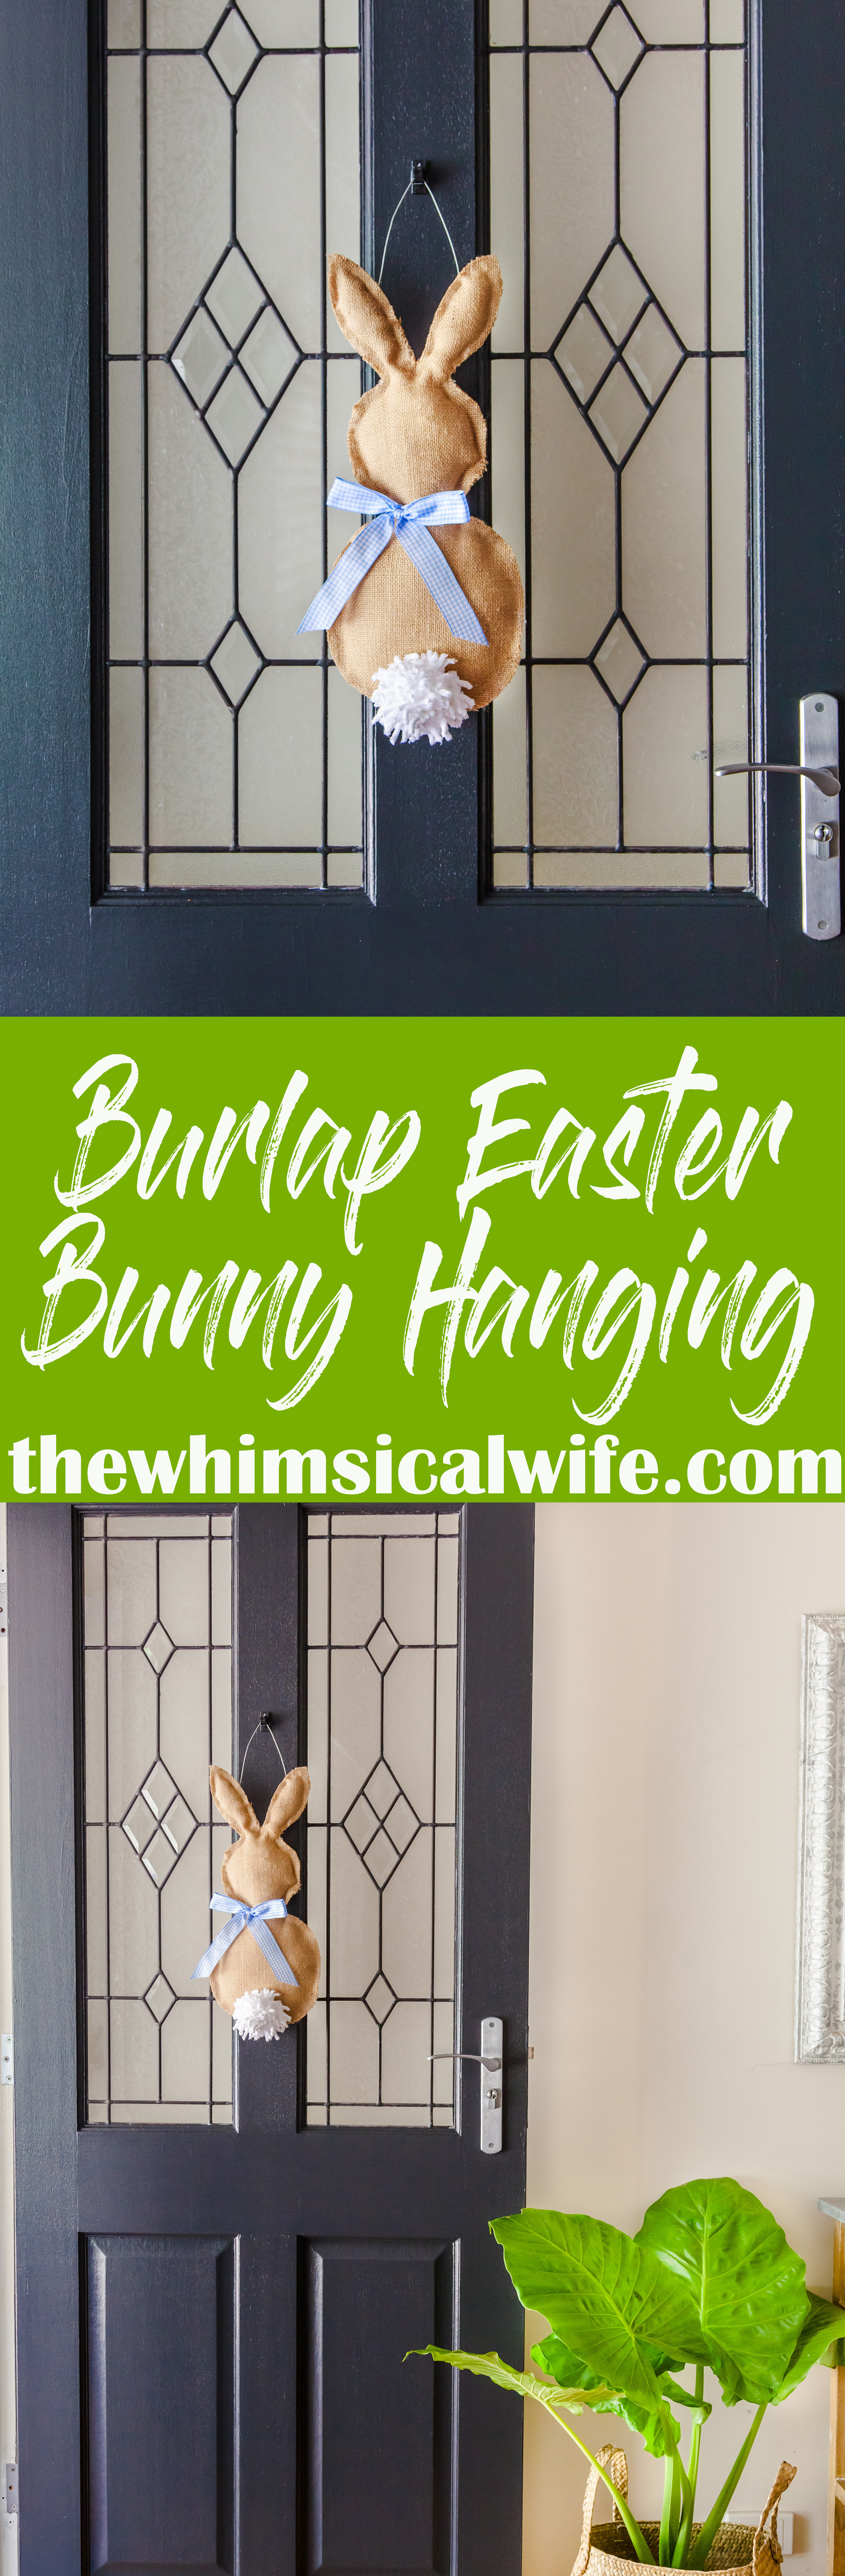 How To Make A No-Sew Burlap Easter Bunny Hanging | The Whimsical Wife